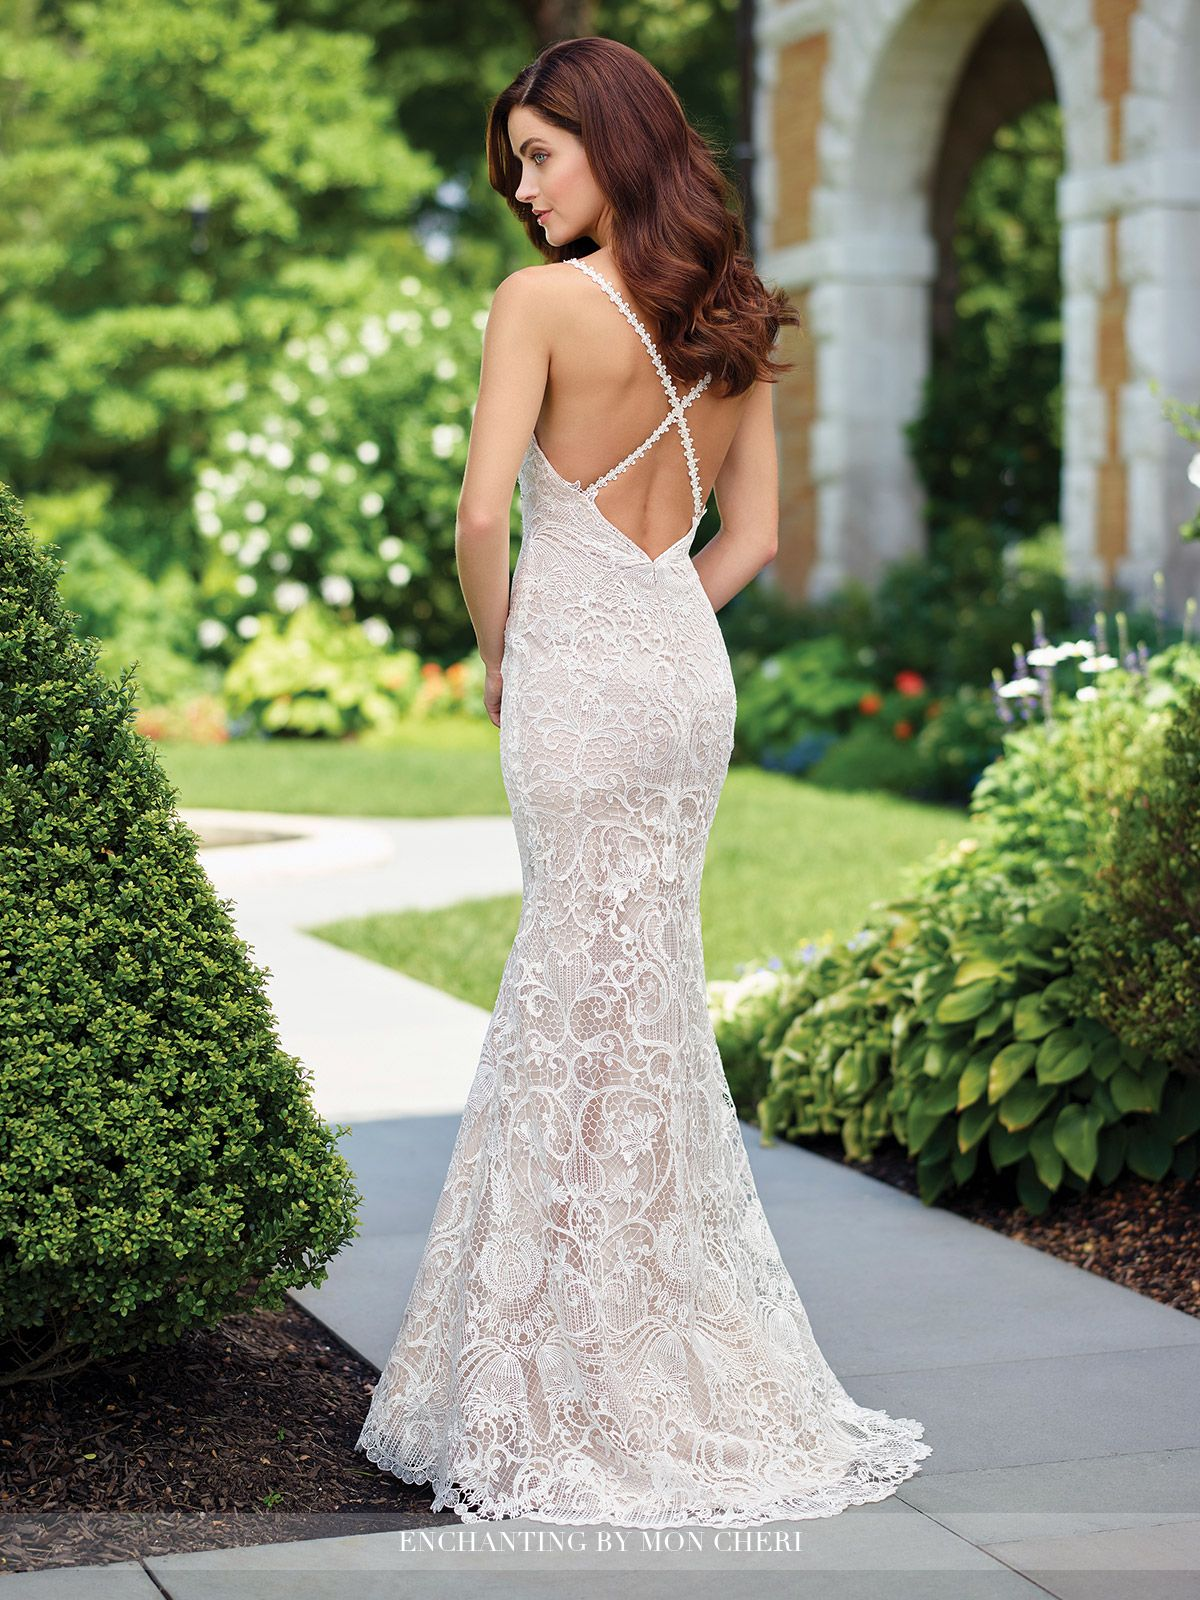 ee08aebd59db Enchanting by Mon Cheri - 117179 - Sleeveless chiffon and tulle fit and flare  gown with allover hand-beaded and embroidered lace, beaded lace spaghetti  ...